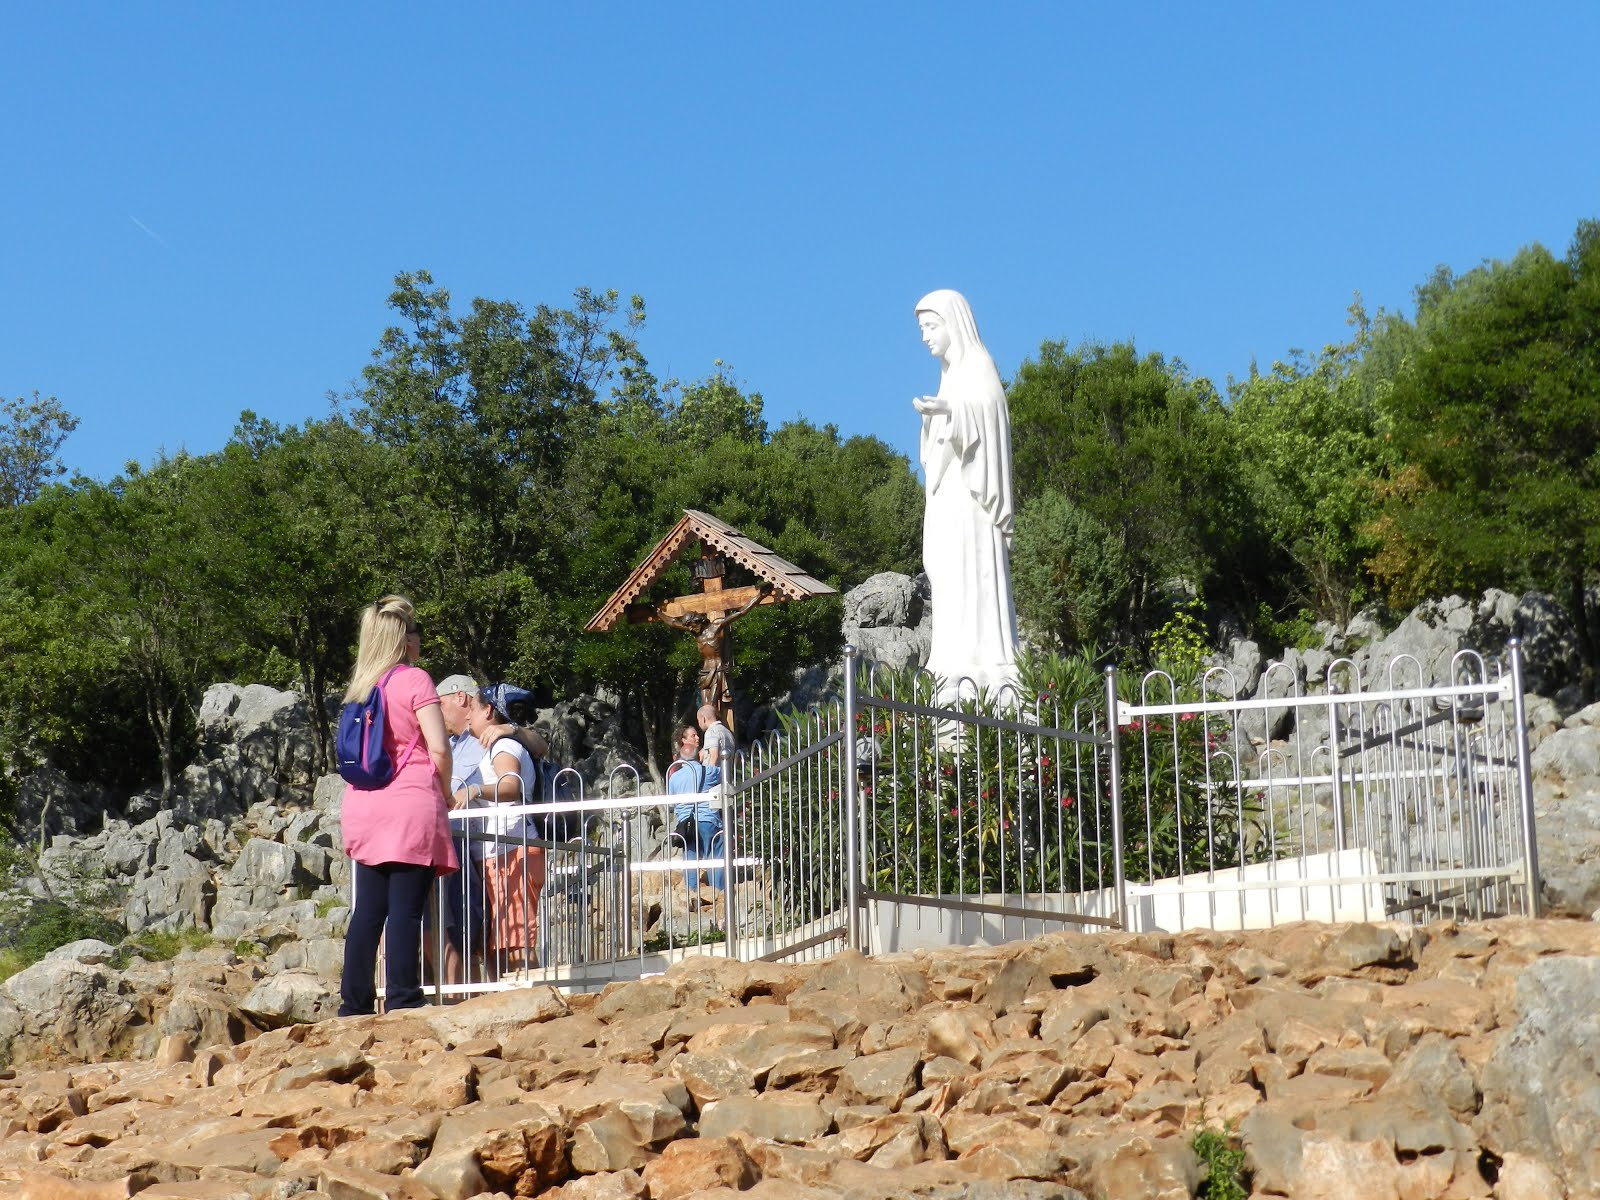 Our Lady's May 2, 2019 Message From Medjugorje